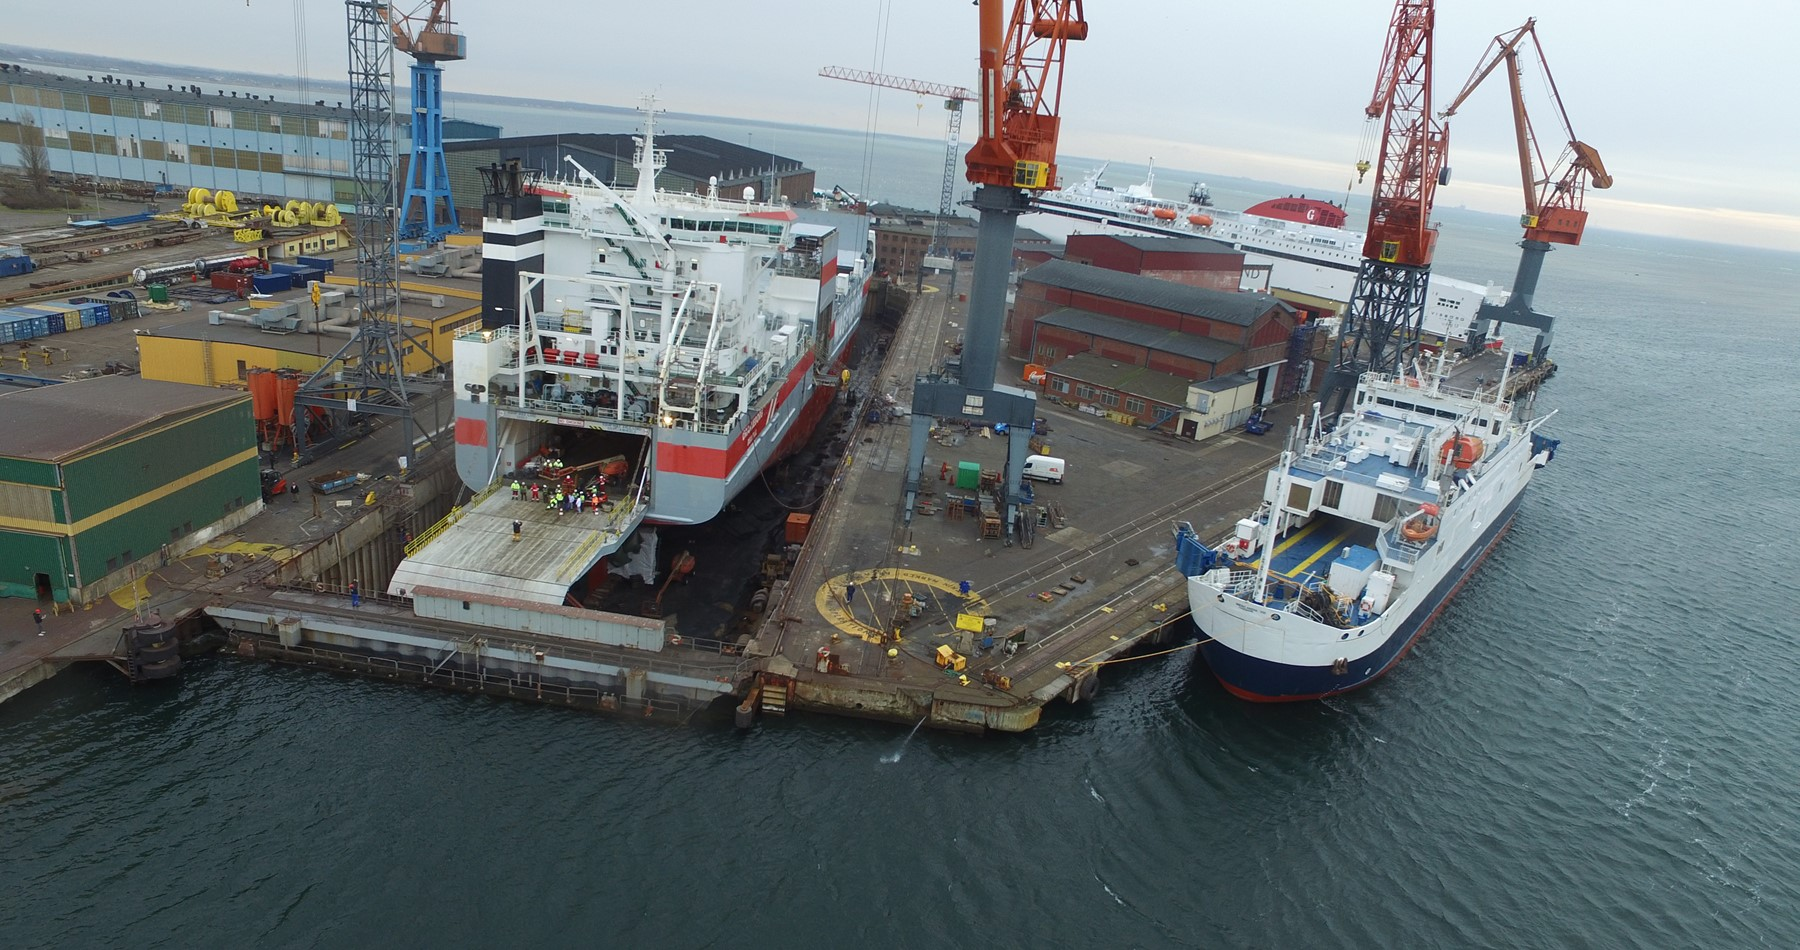 Oranjeborg ready for service after 15 year renewal survey